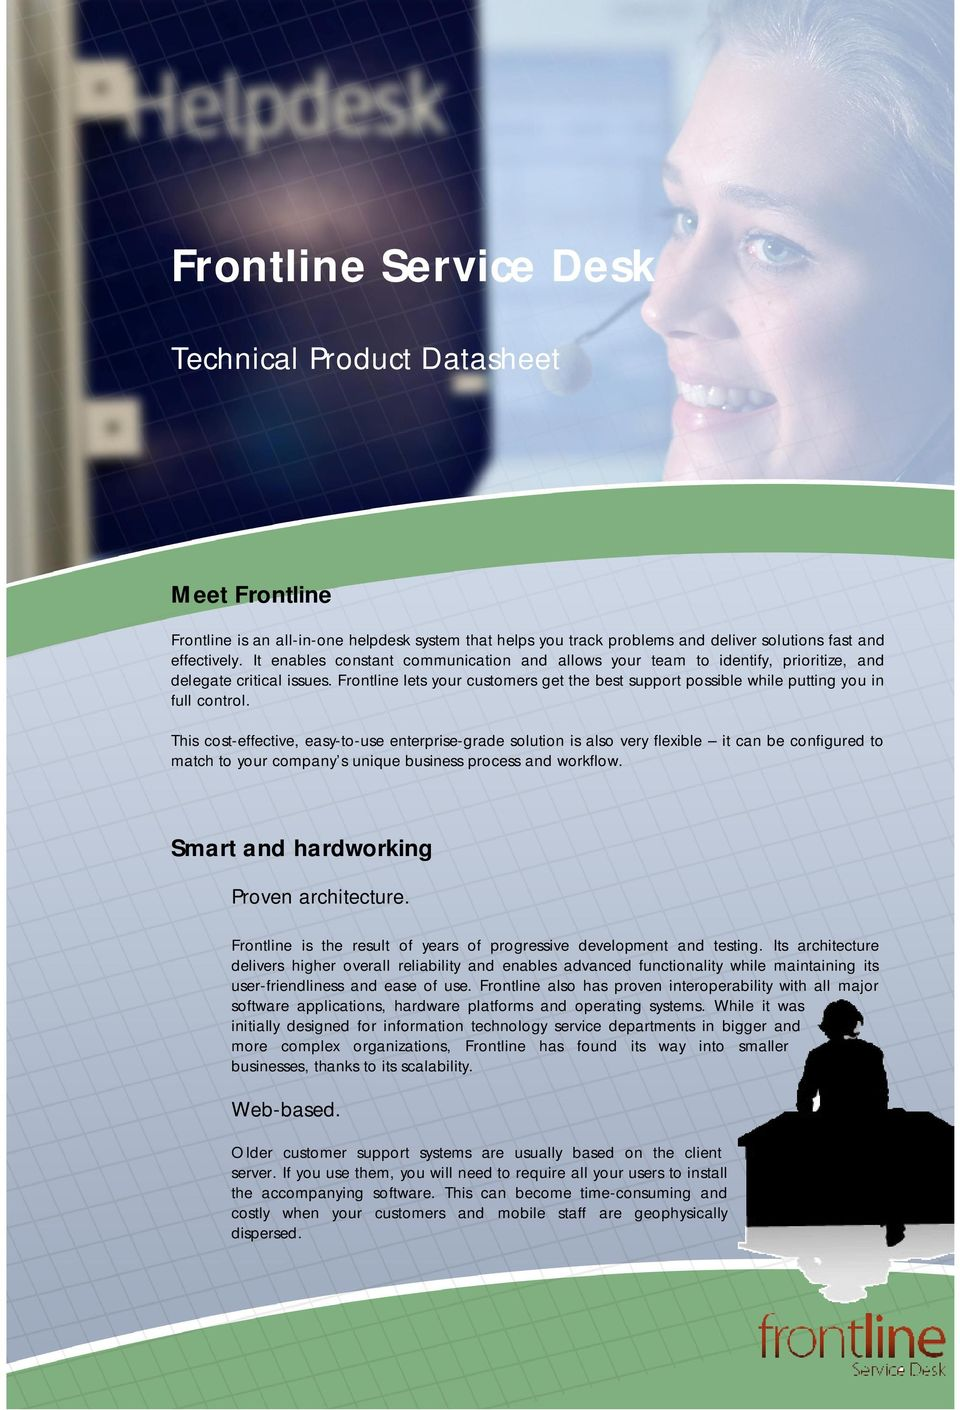 Frontline lets your customers get the best support possible while putting you in full control.